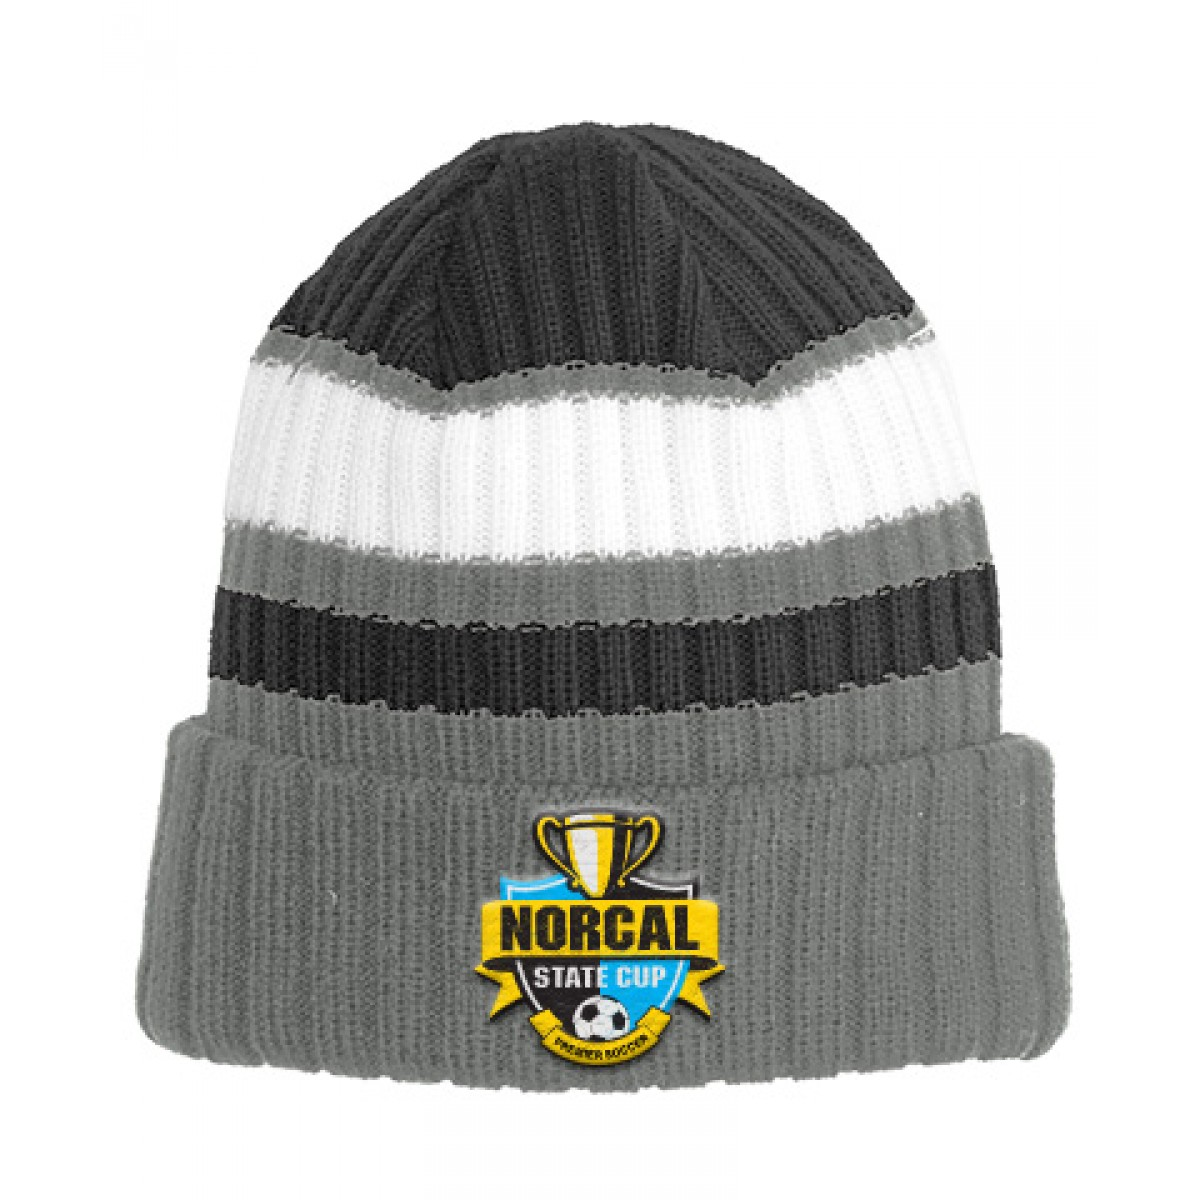 Embroidered New Era Ribbed Tailgate Beanie